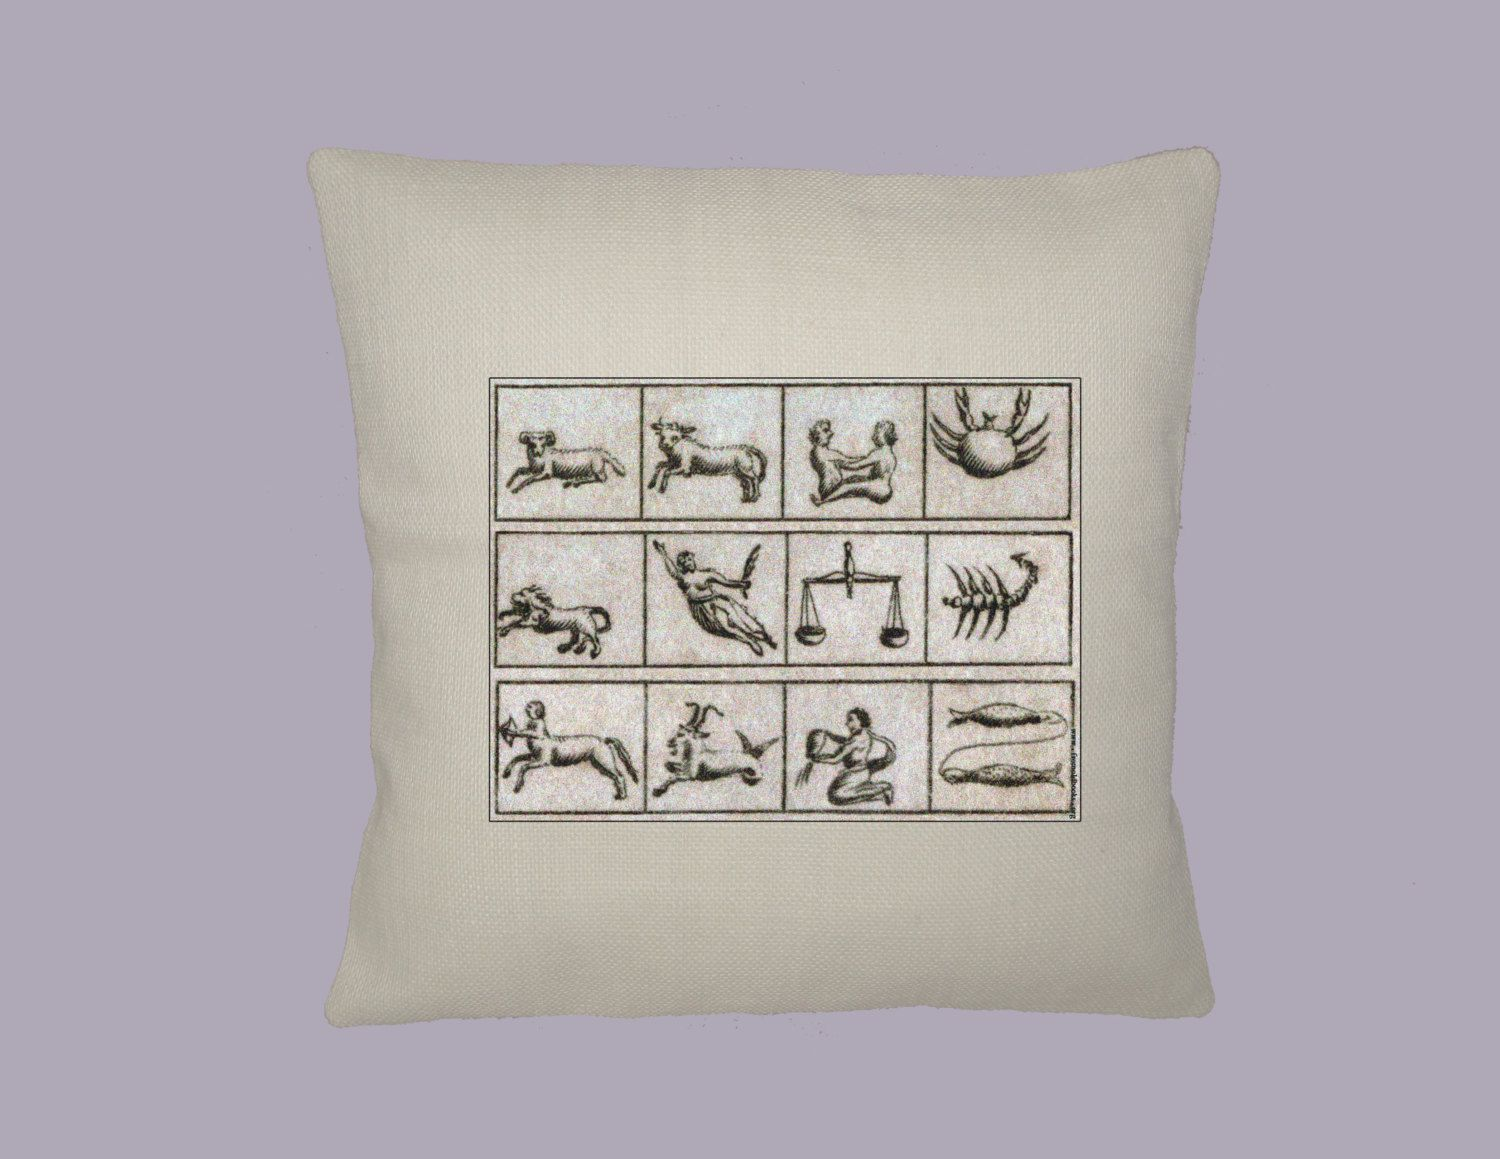 Ancient Astrological Signs Symbols HANDMADE 16x16 Pillow Cover - Choice of Fabric - any Image Color by WhimsyFrills on Etsy